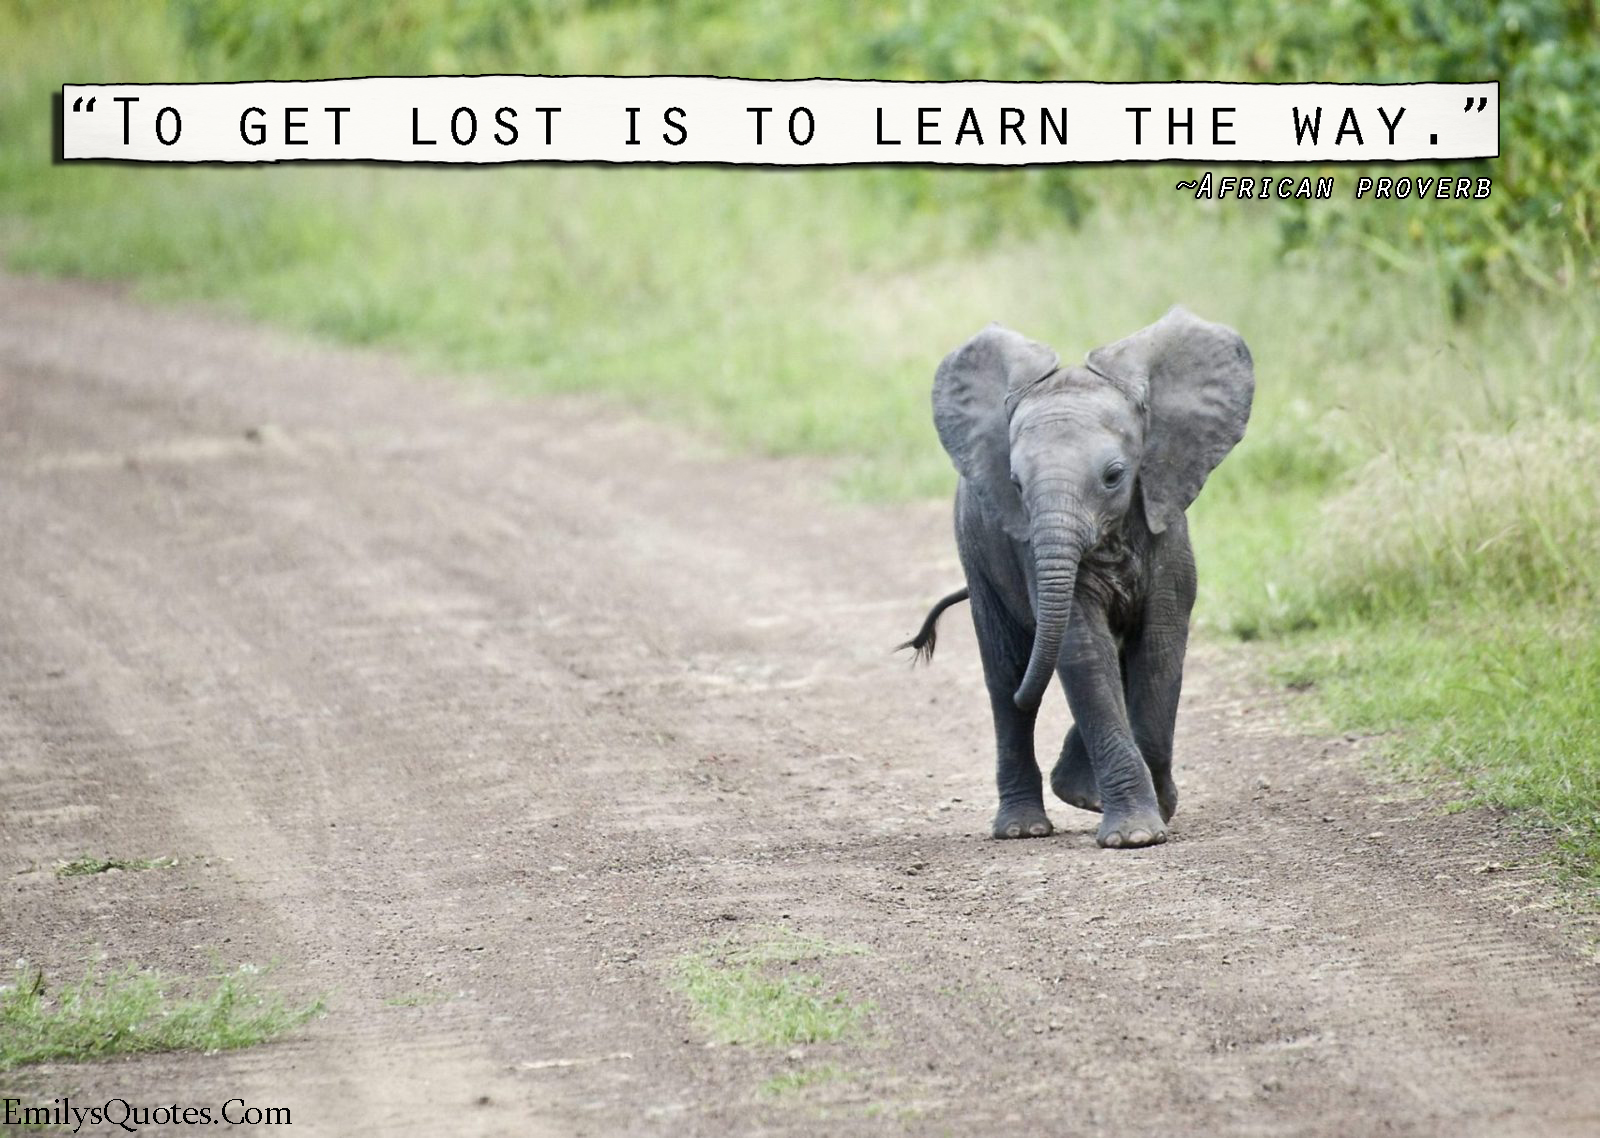 EmilysQuotes.Com - lost, learning, understanding, wisdom, African proverb